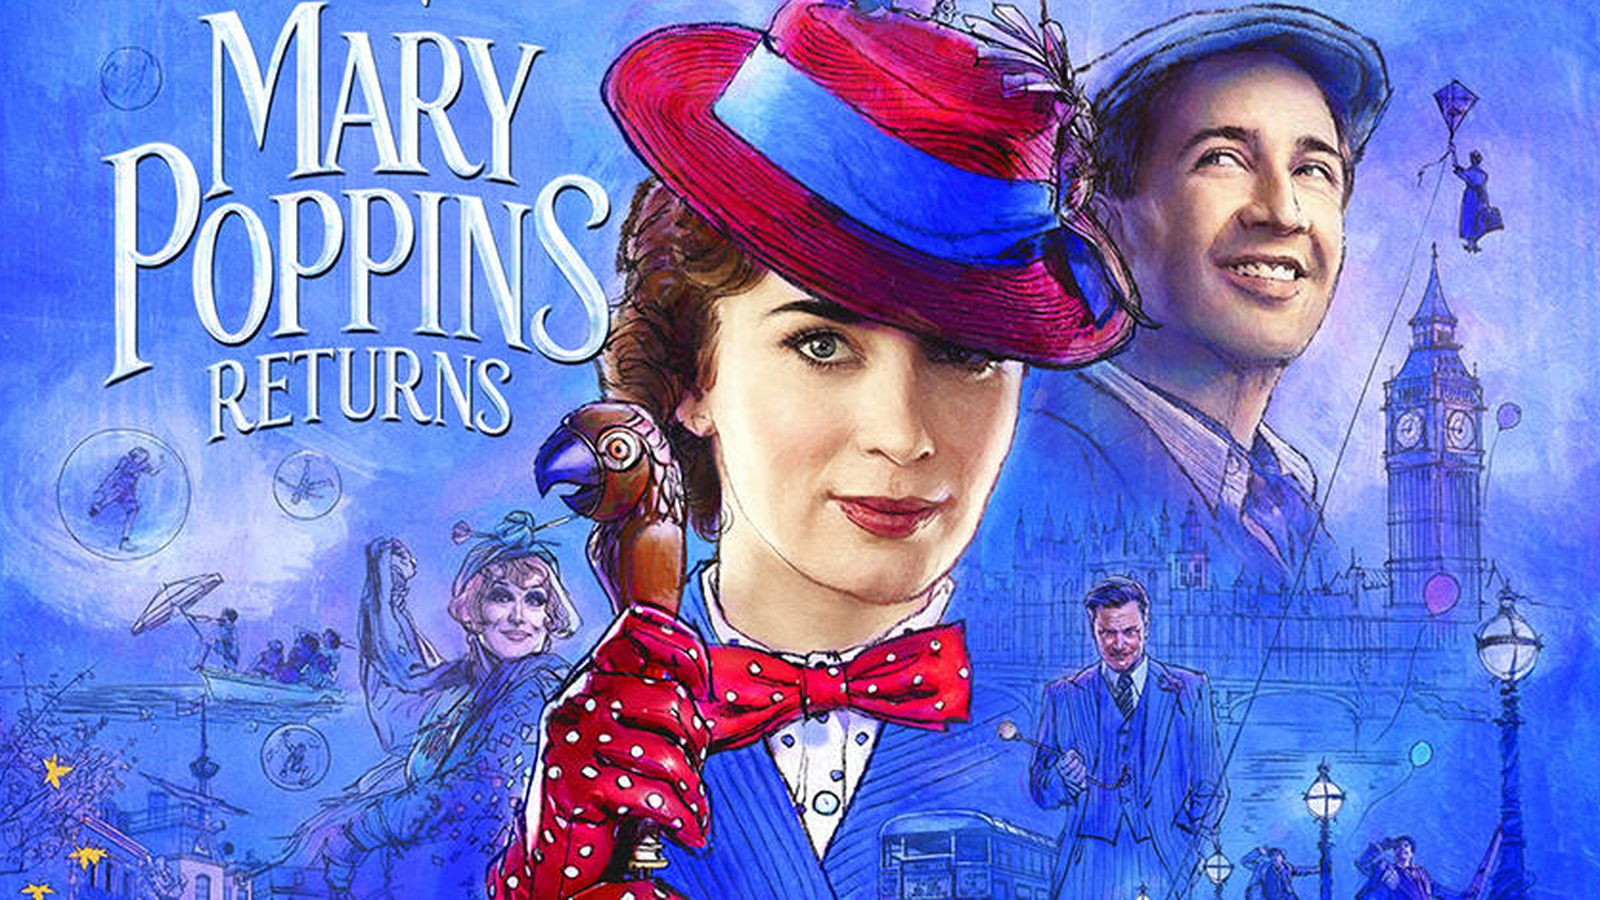 Mary Poppins - Flicks in the Sticks film